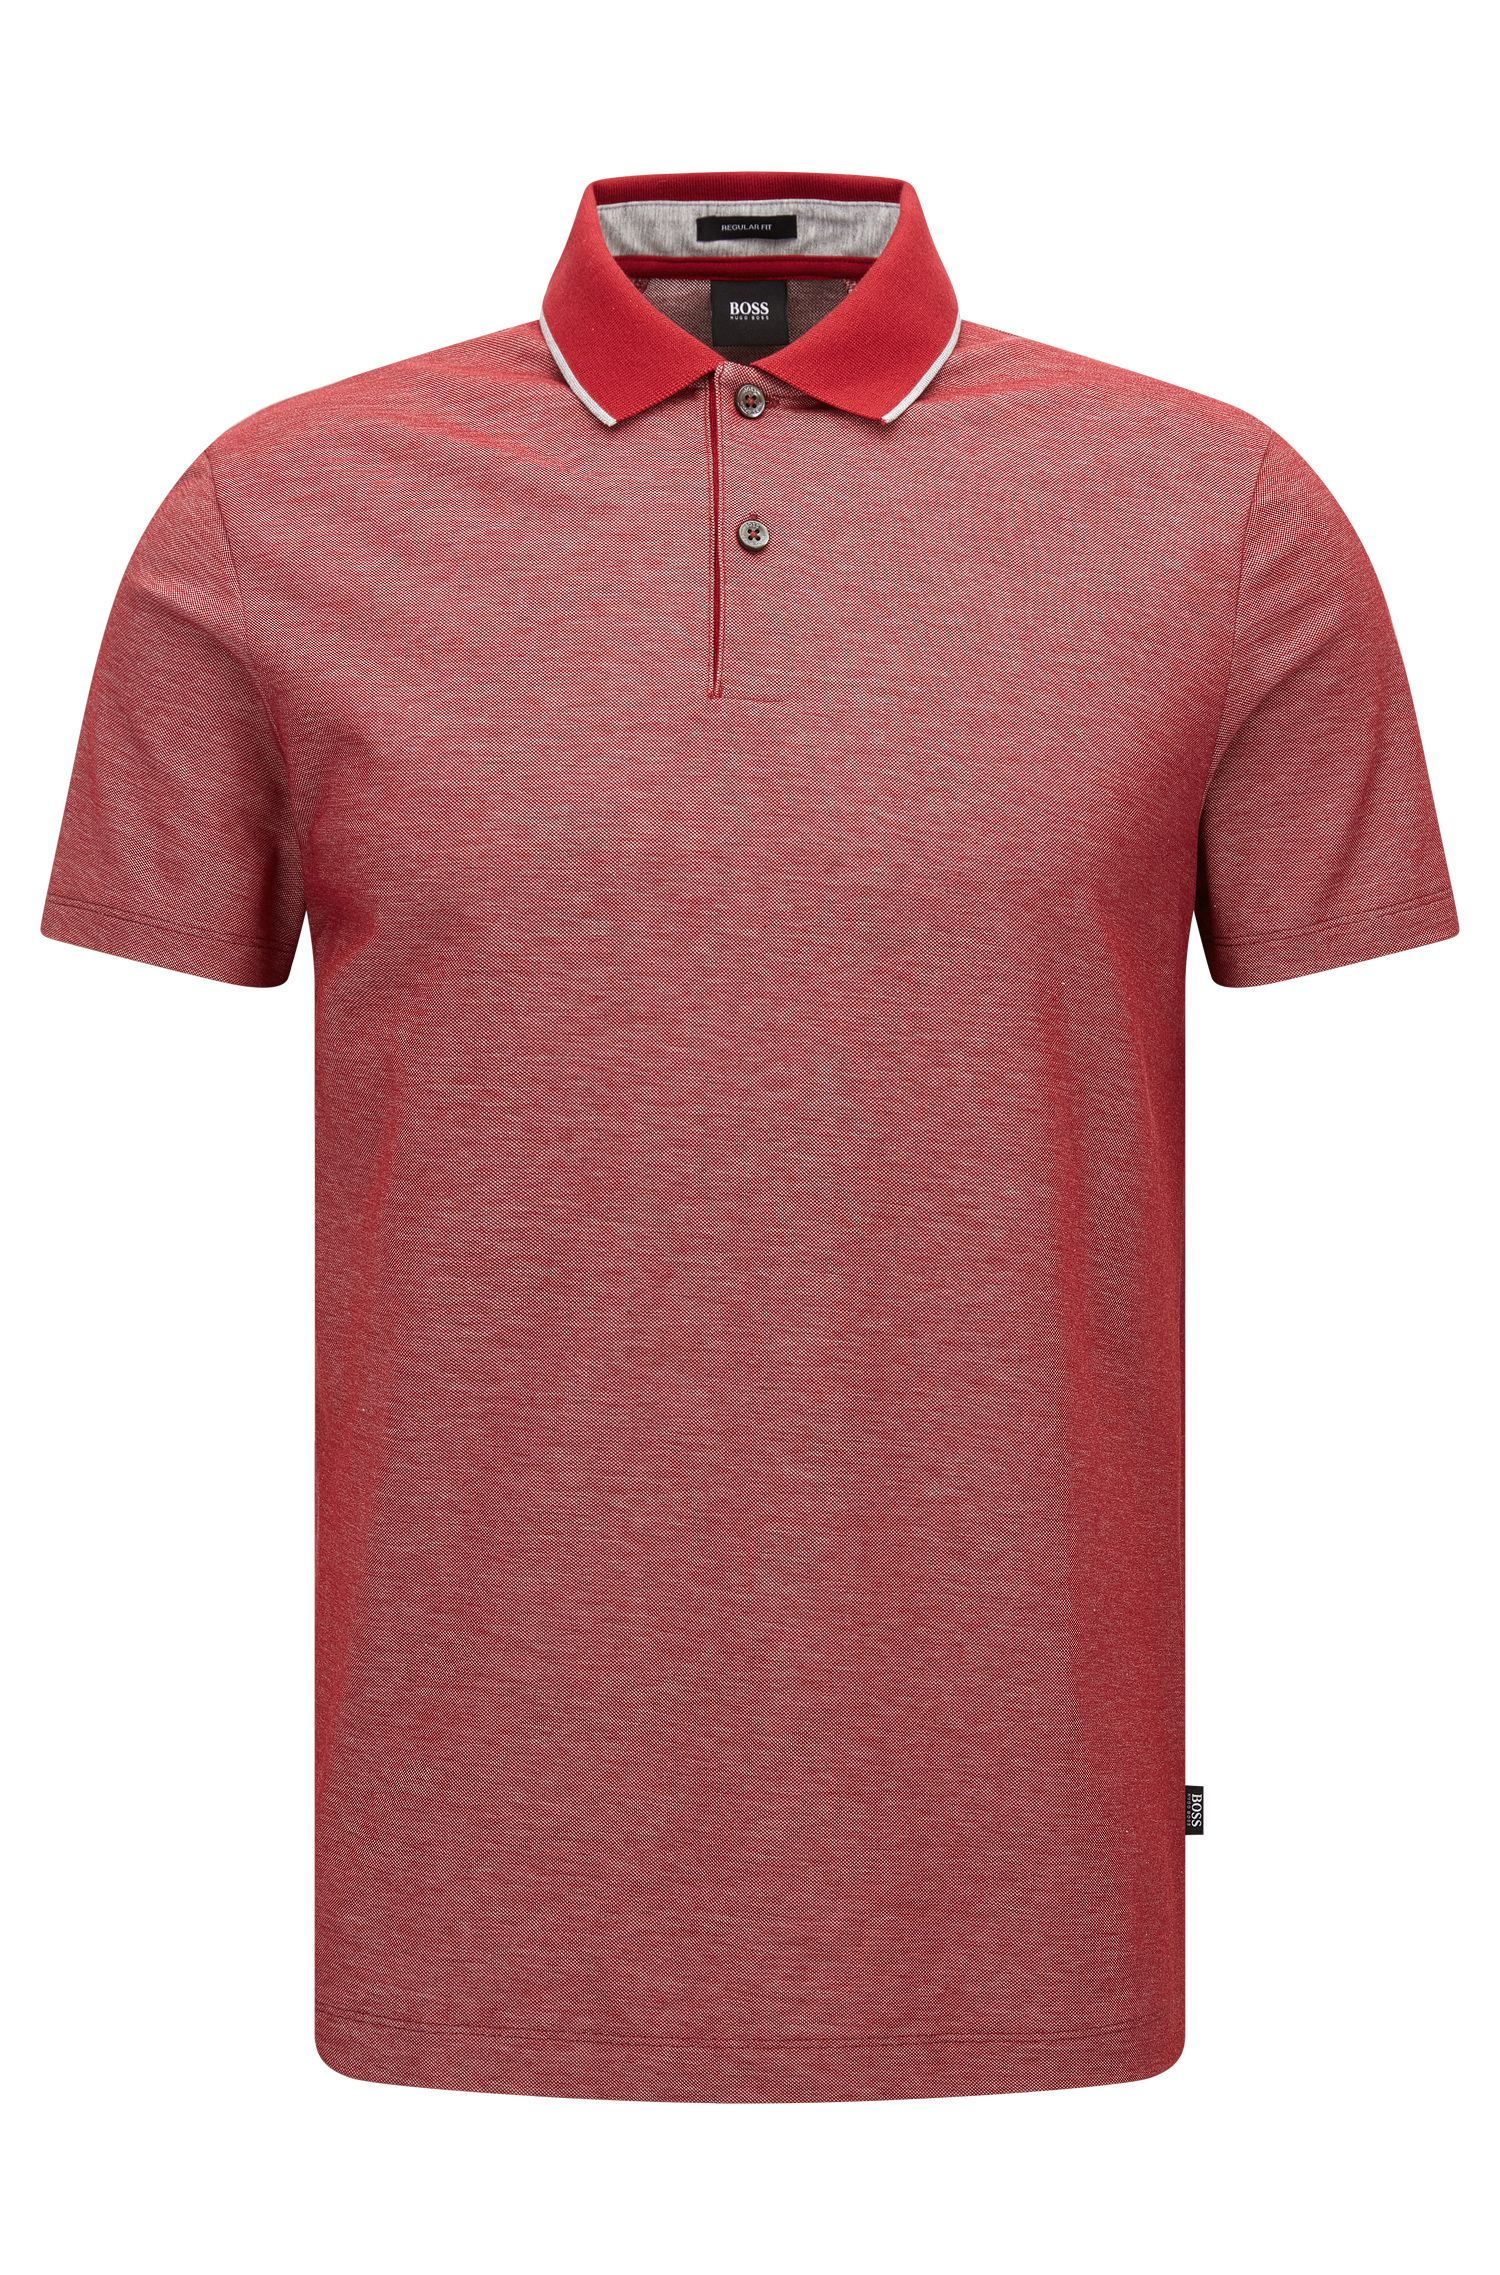 Cotton Polo Shirt, Regular Fit | Piket, Red